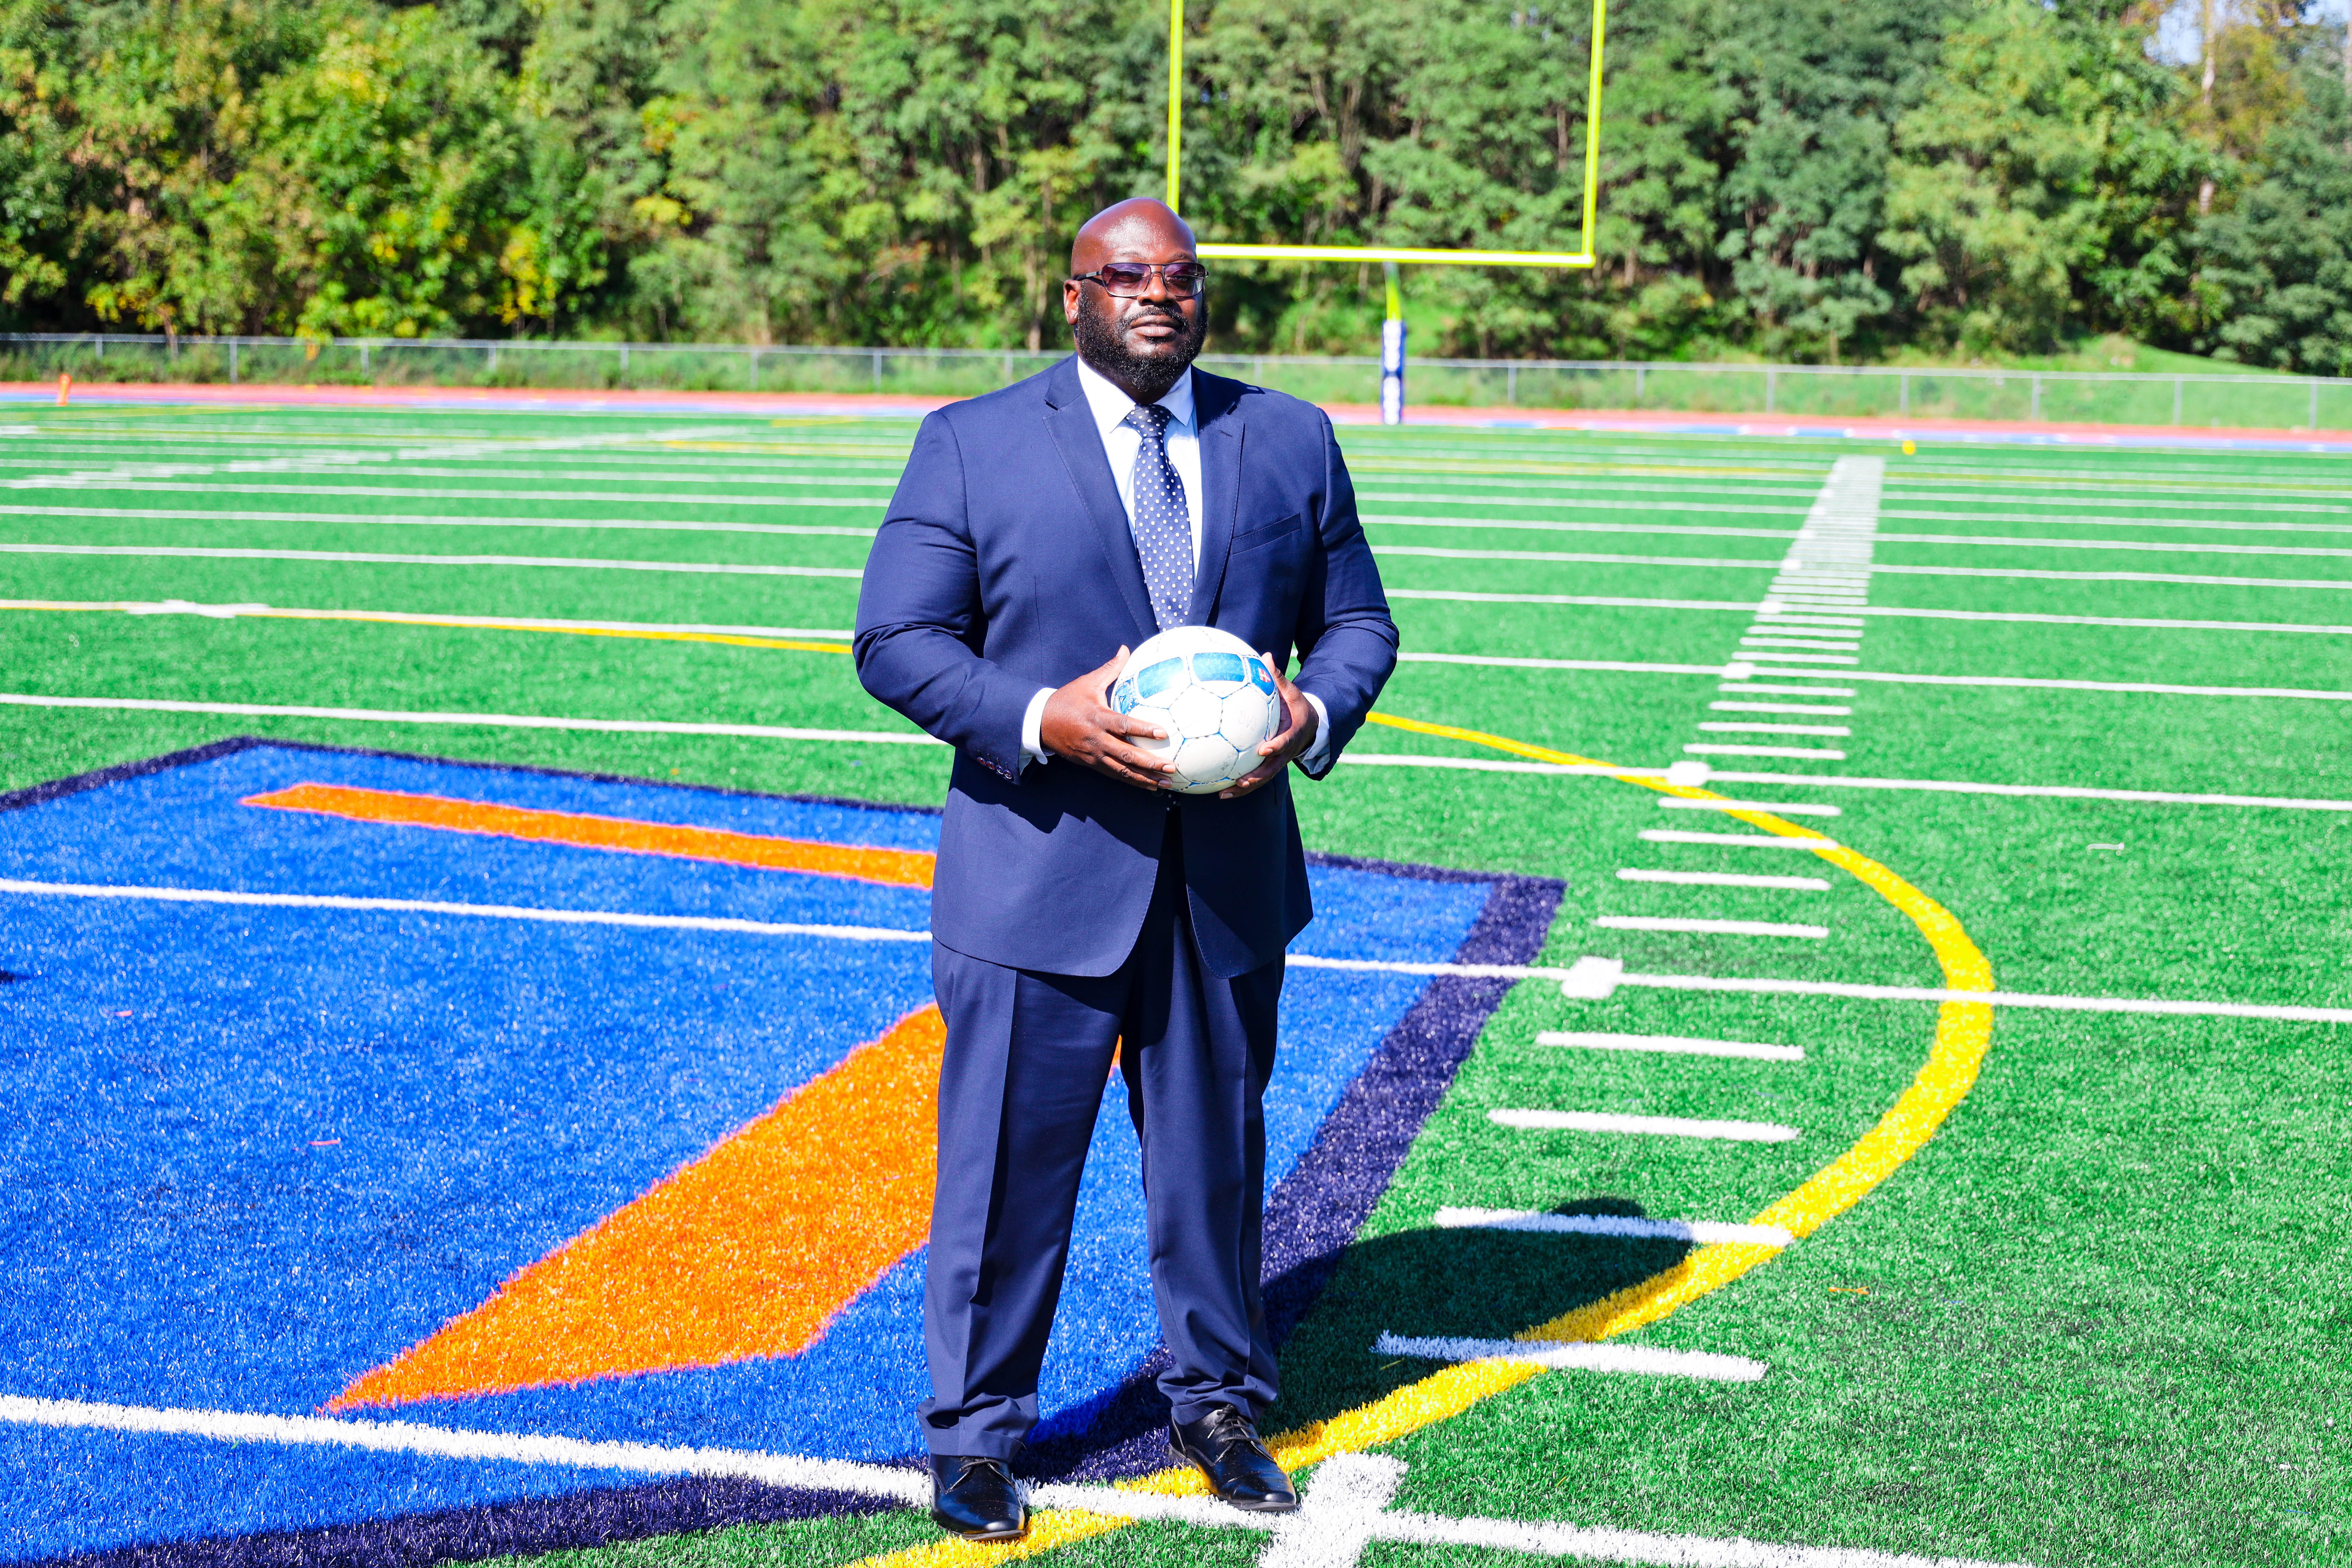 Dr. Cook holding soccer ball on turf field